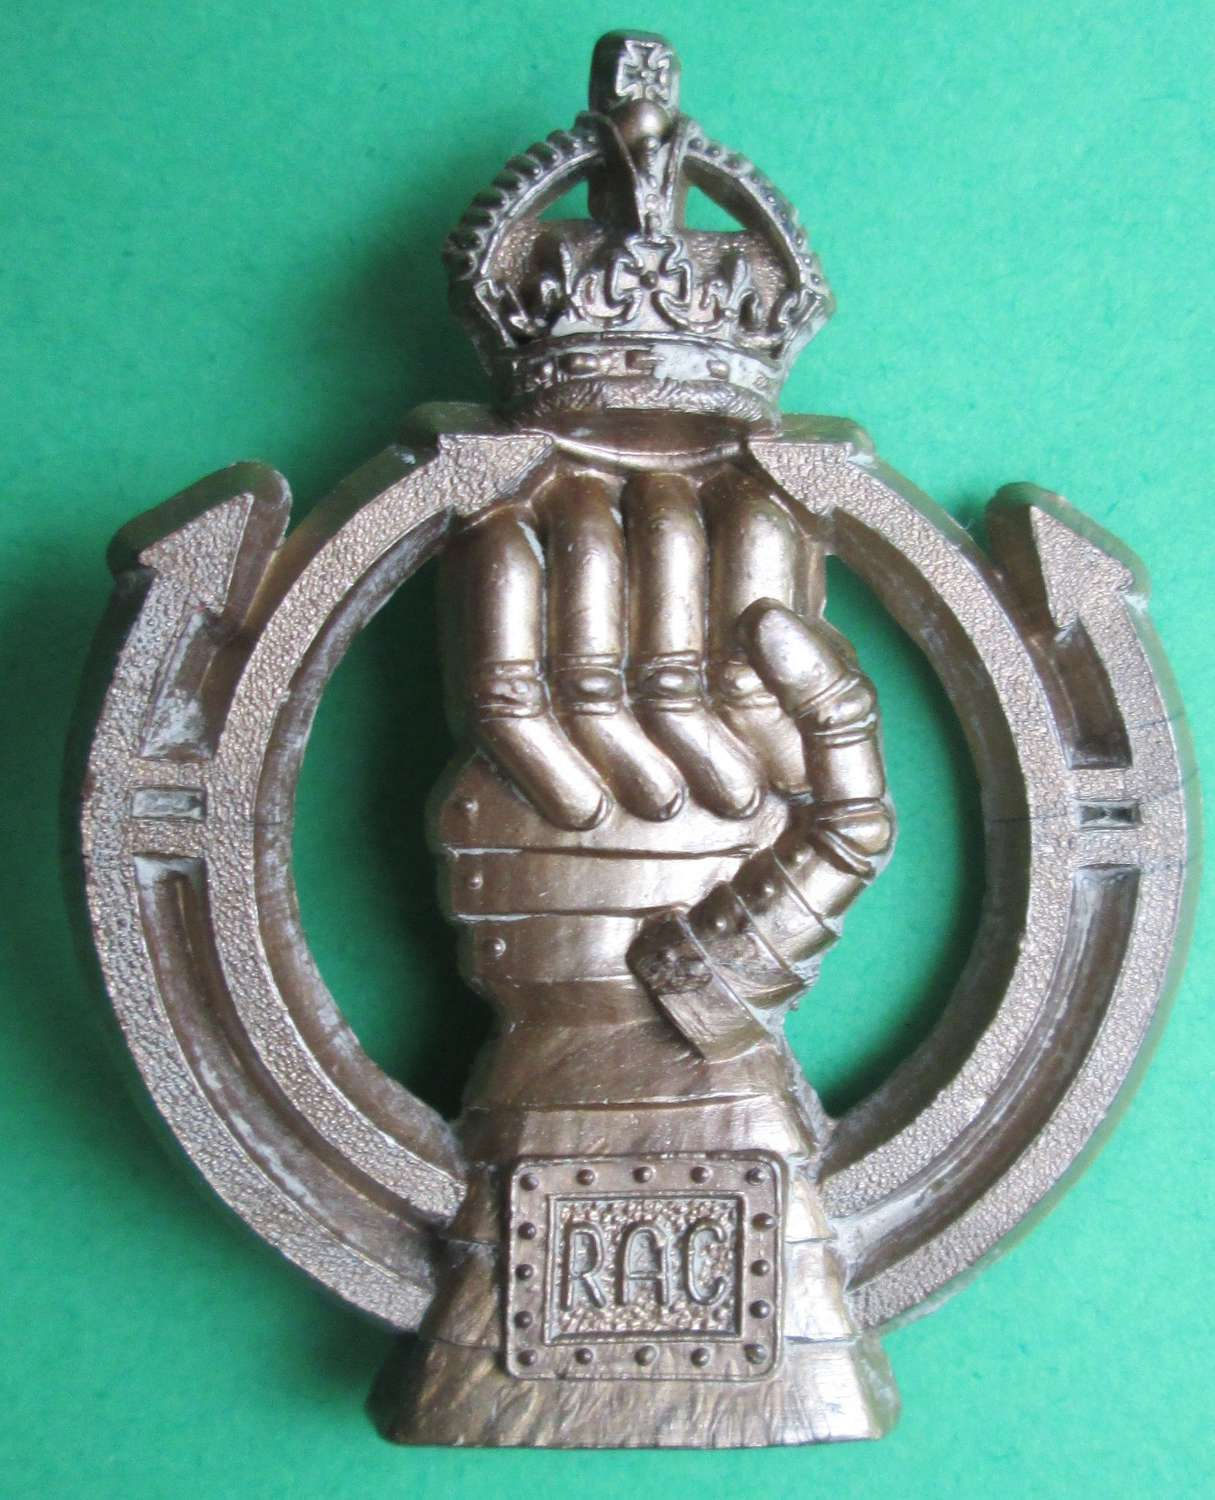 A ROYAL ARMOURED CORPS PLASTIC CAP BADGE